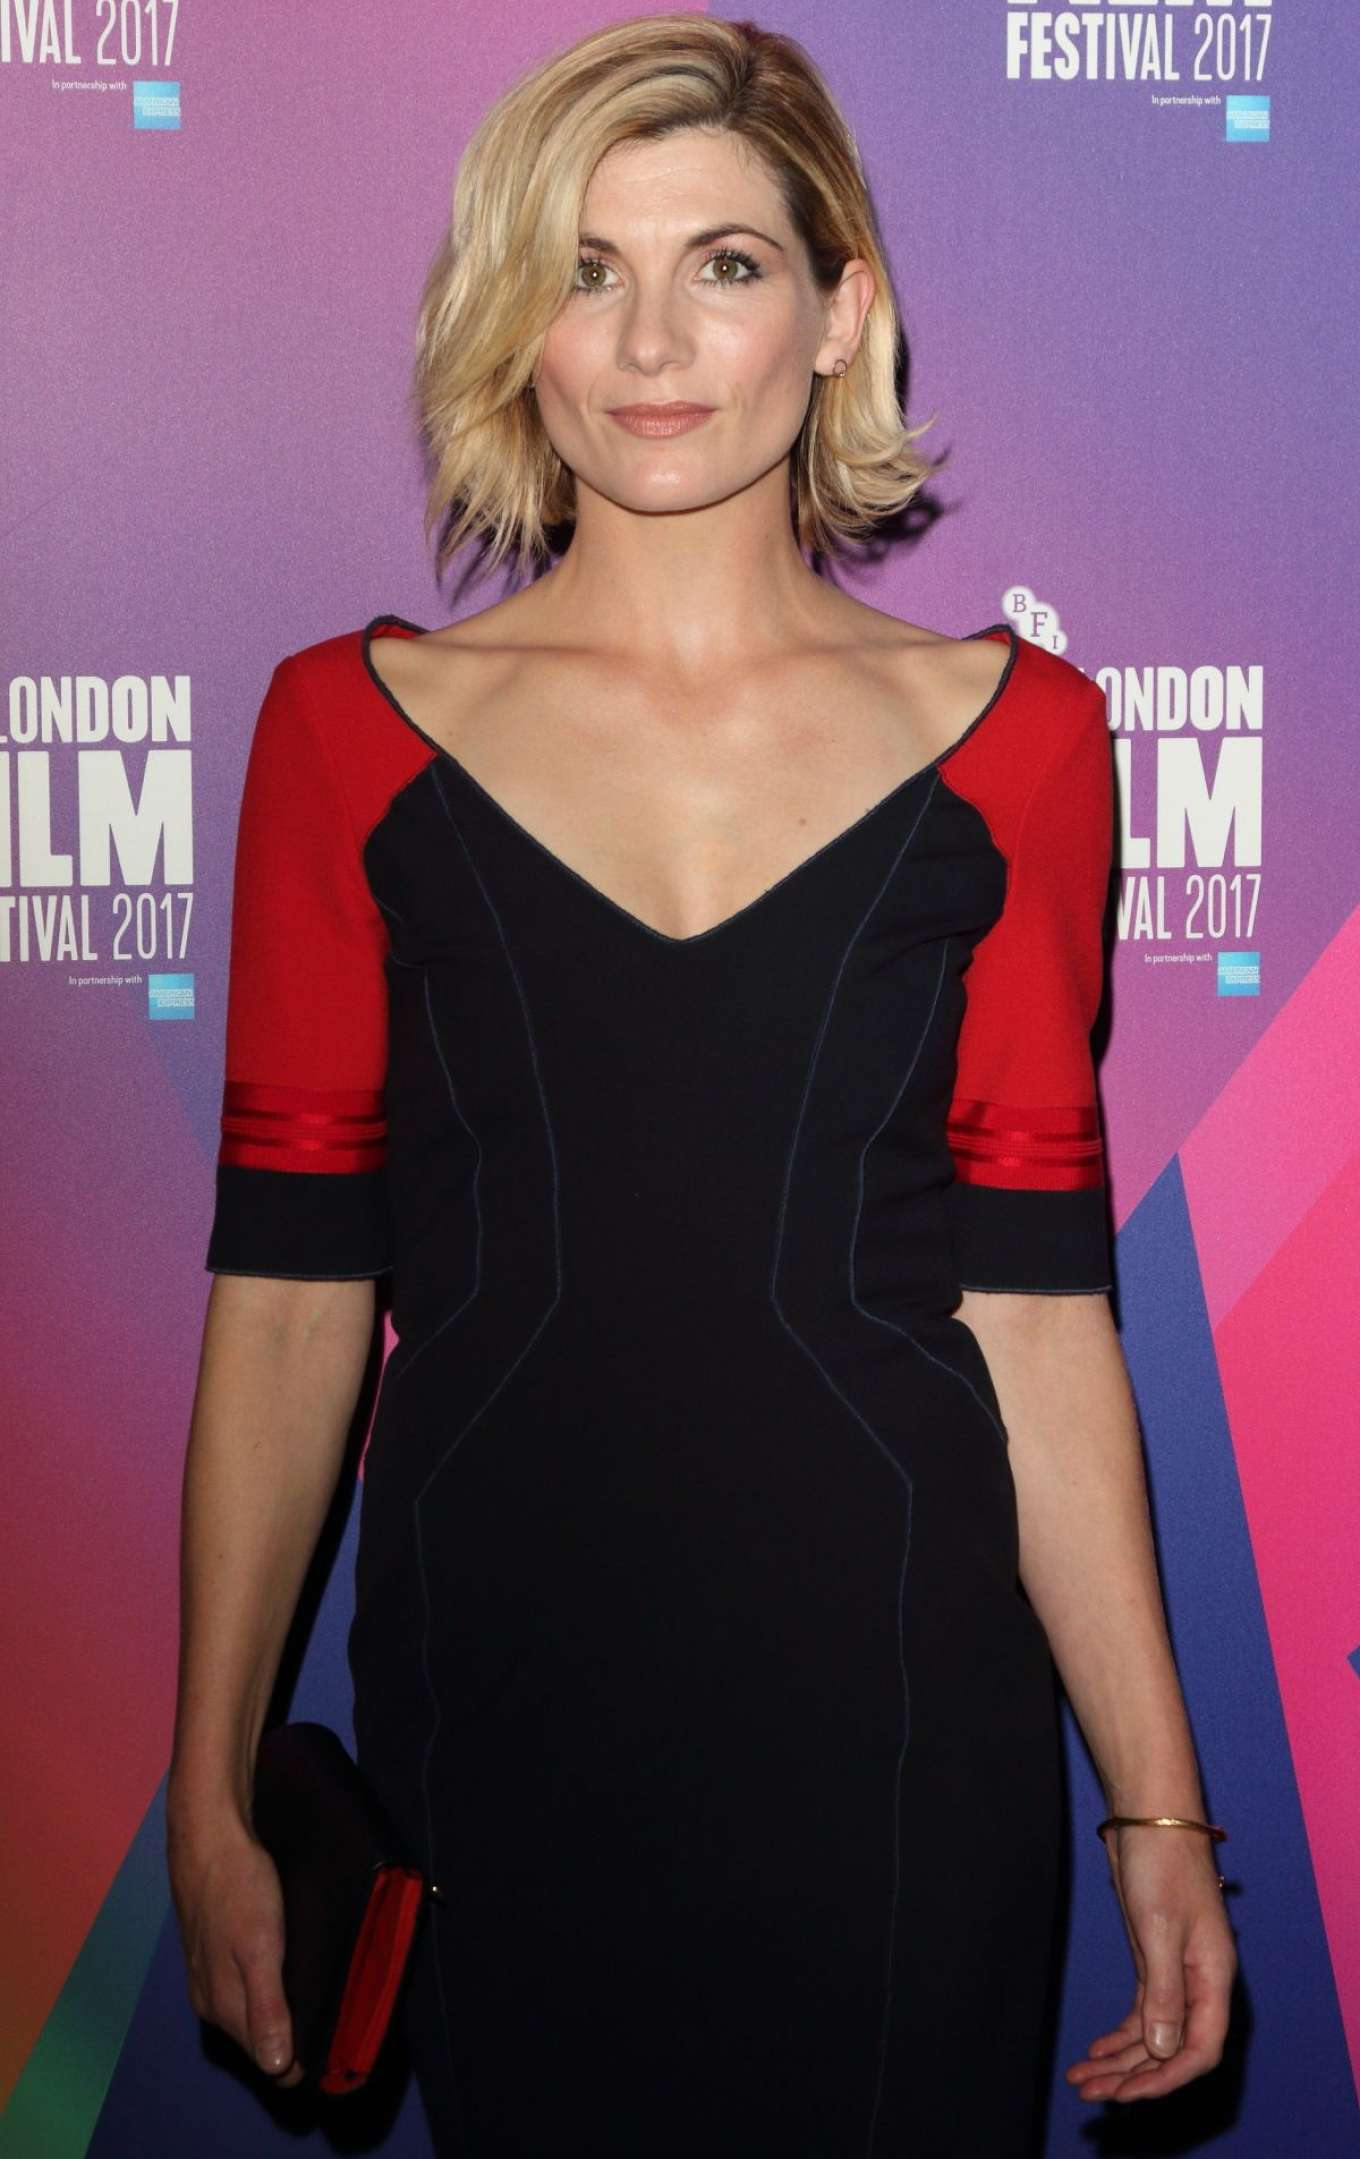 Jodie Whittaker - 'Journeyman' Premiere at BFI Film